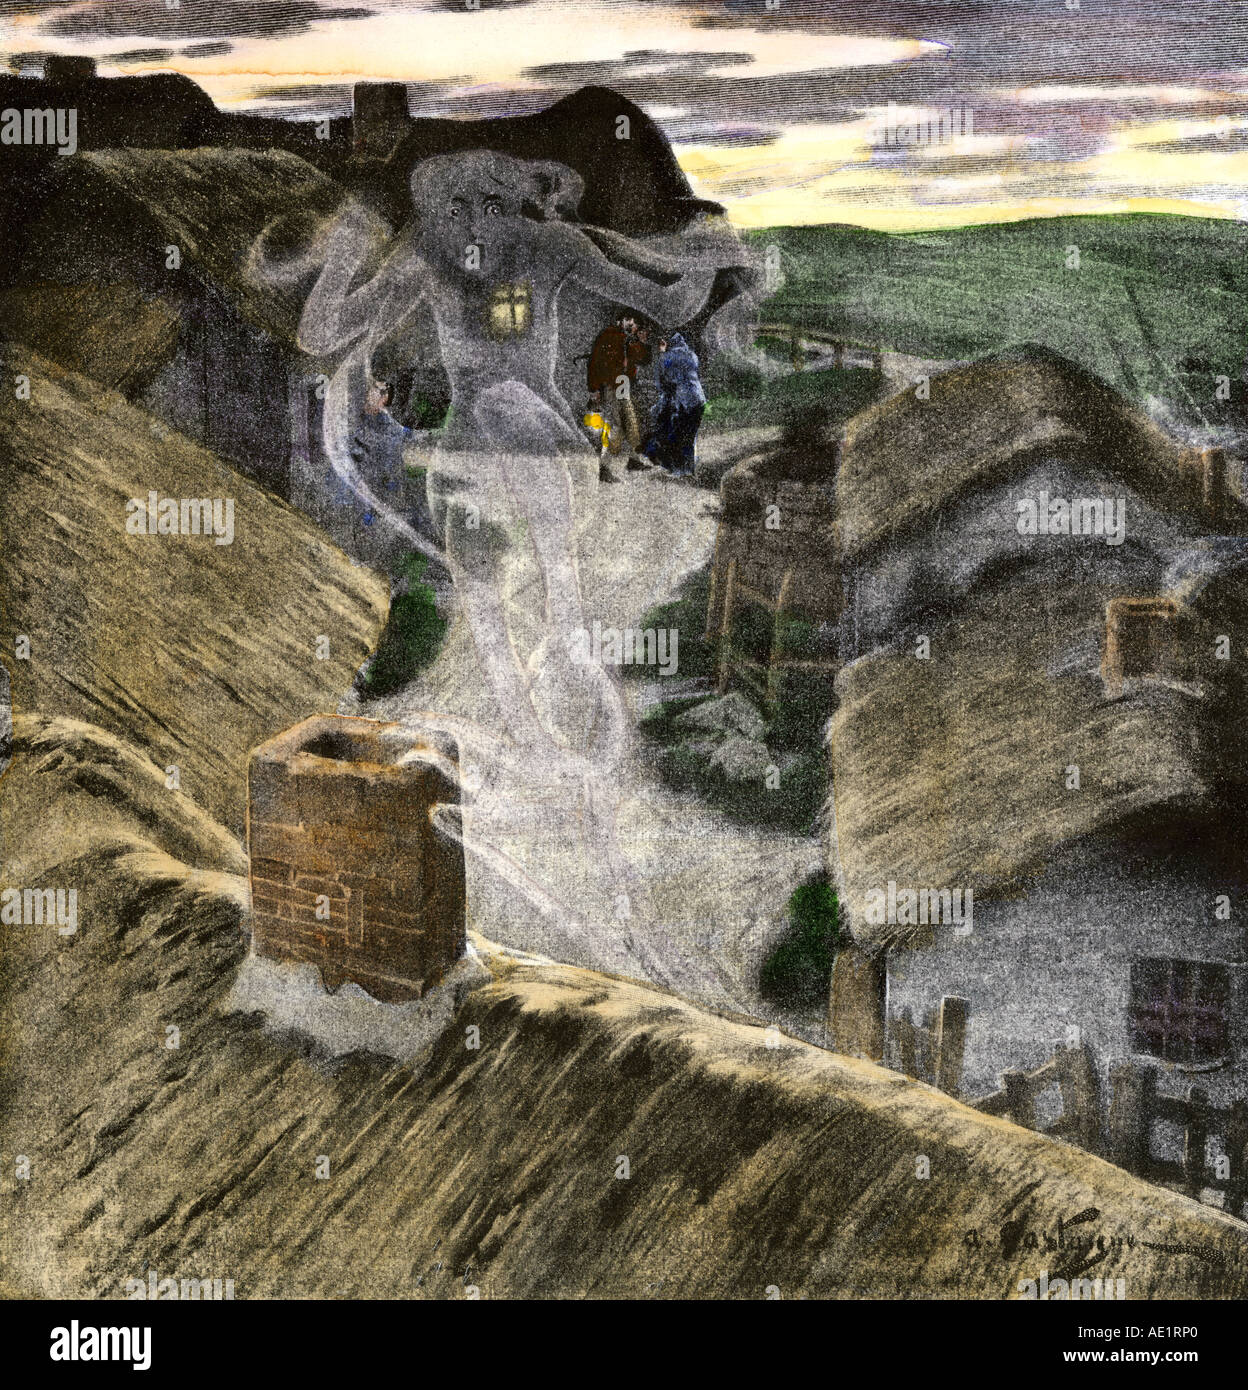 Banshee wailing to foretell death in an Irish village. Hand-colored halftone of an illustration - Stock Image